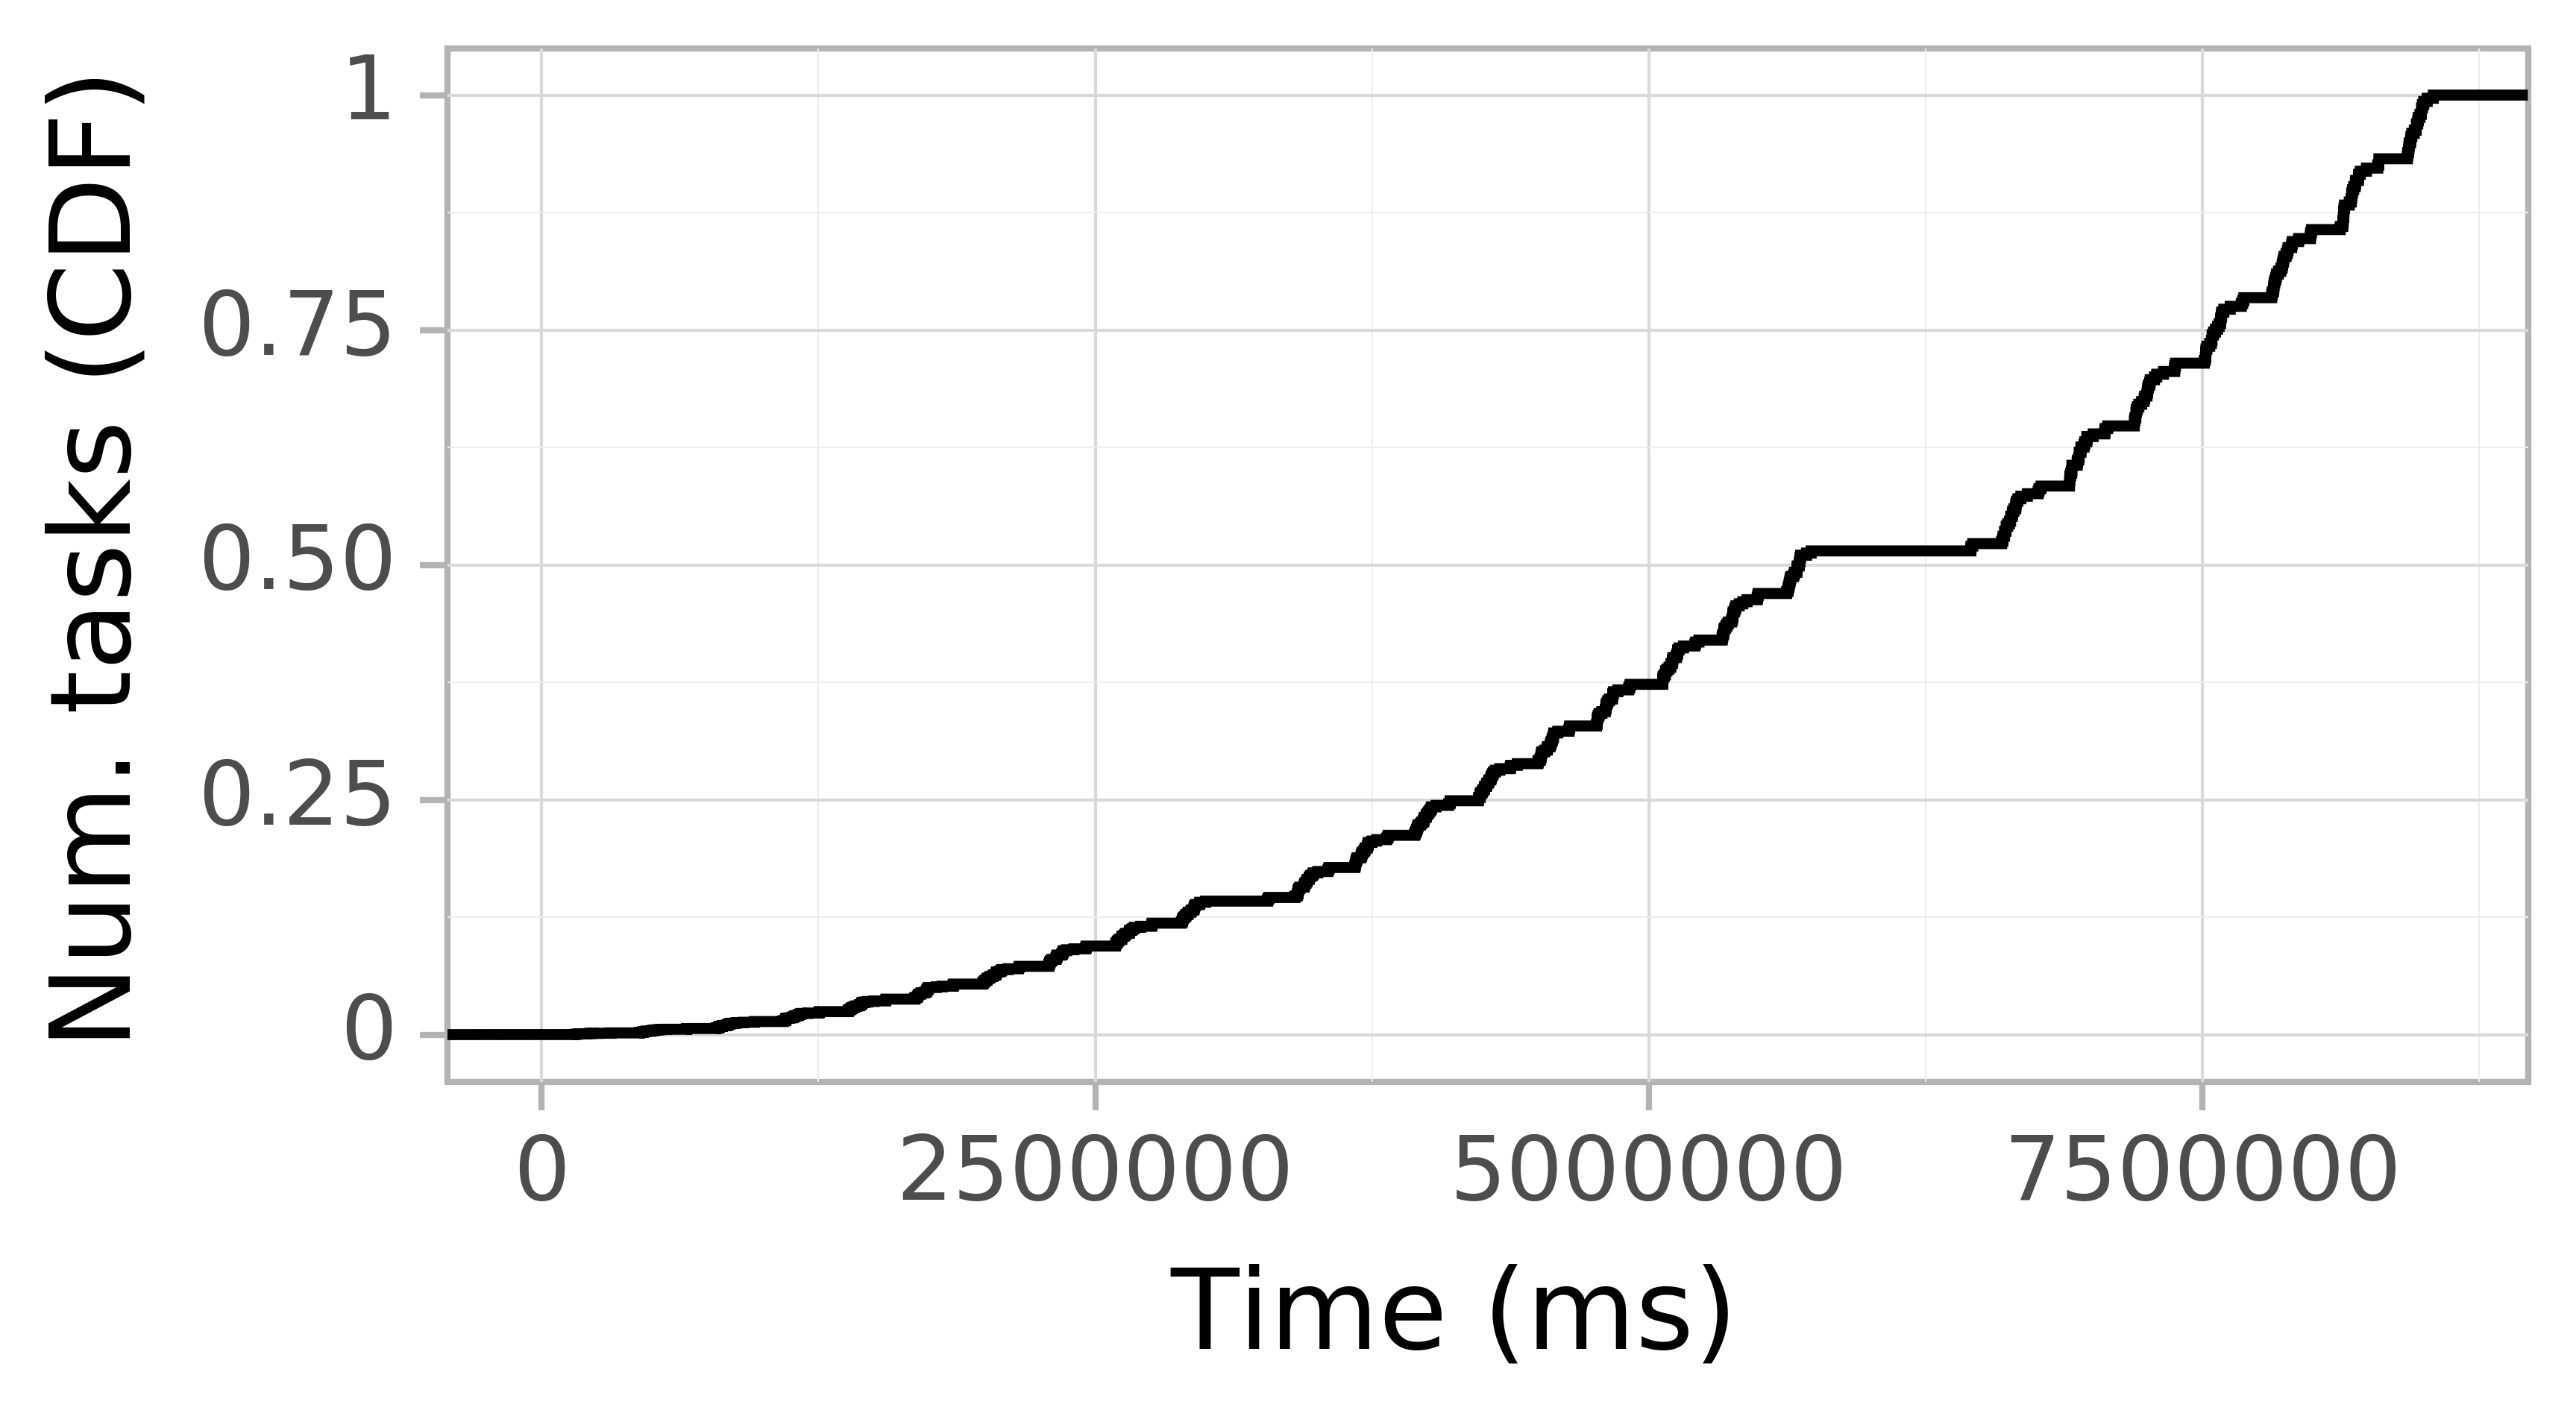 Task arrival CDF graph for the askalon-new_ee29 trace.